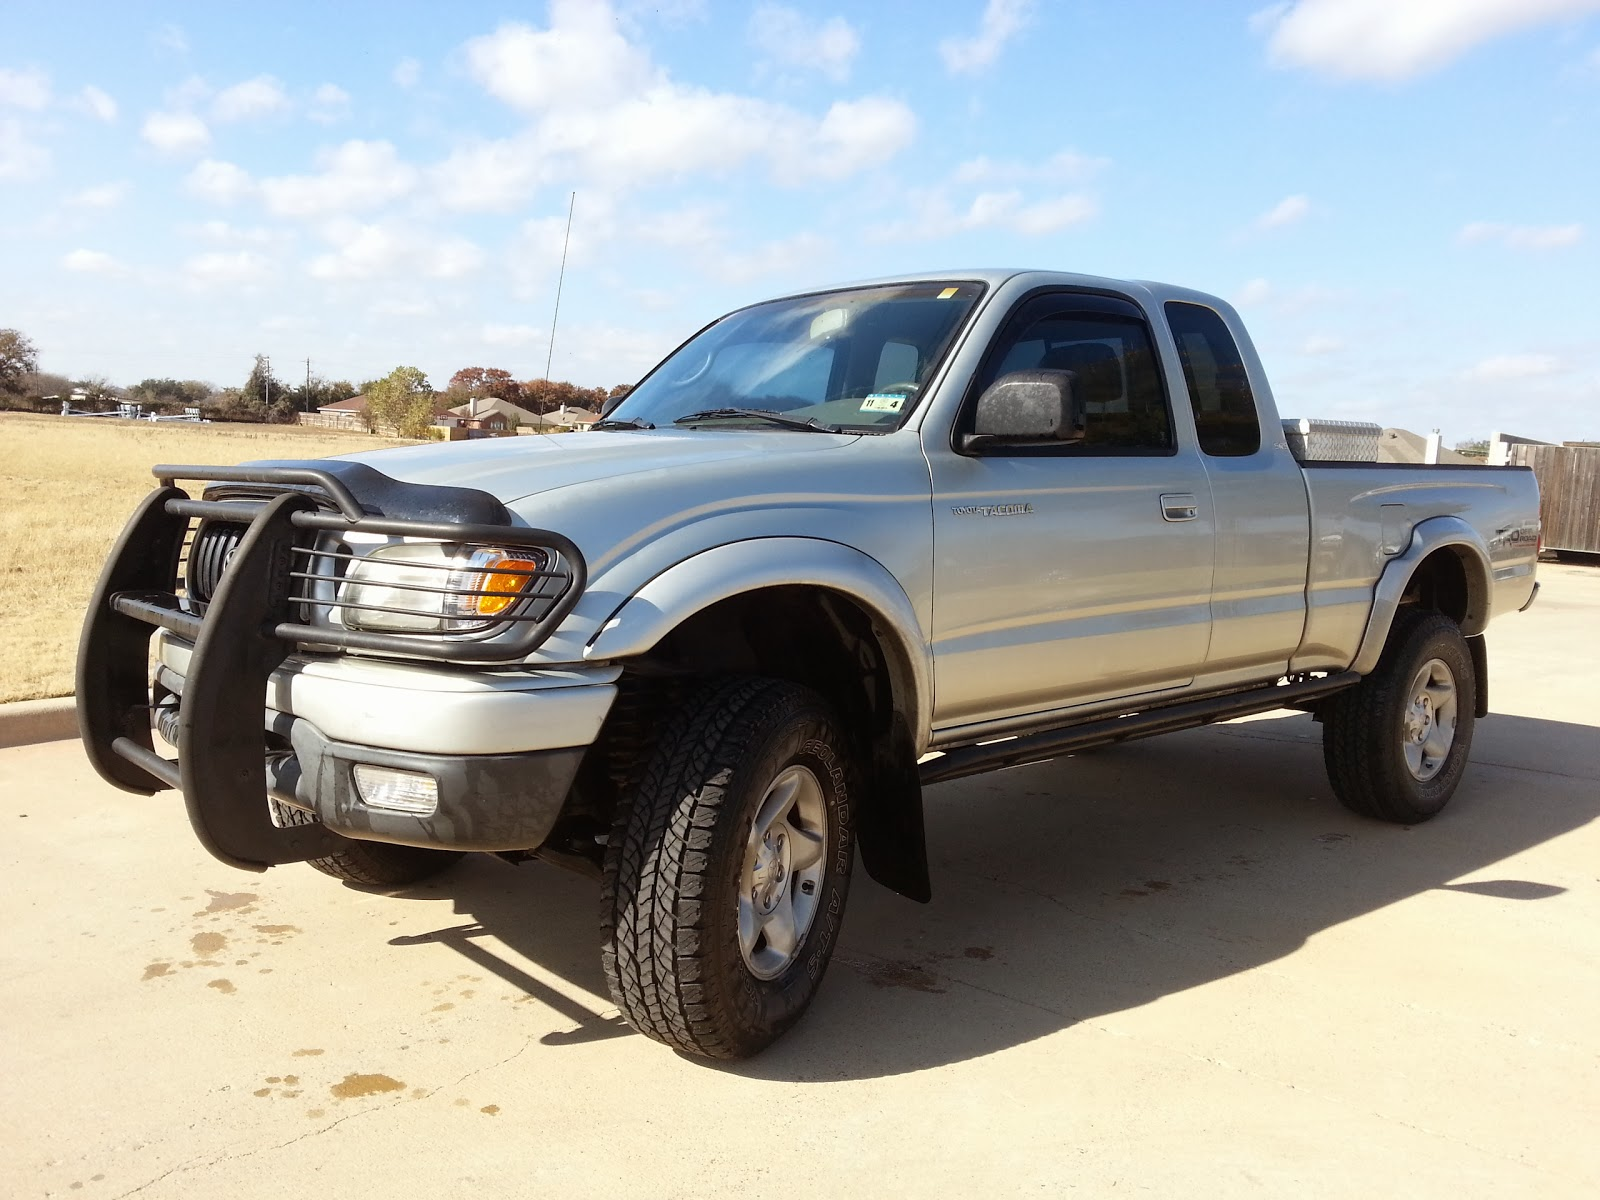 toyota trucks 4x4 for sale tdy sales troy young. Black Bedroom Furniture Sets. Home Design Ideas